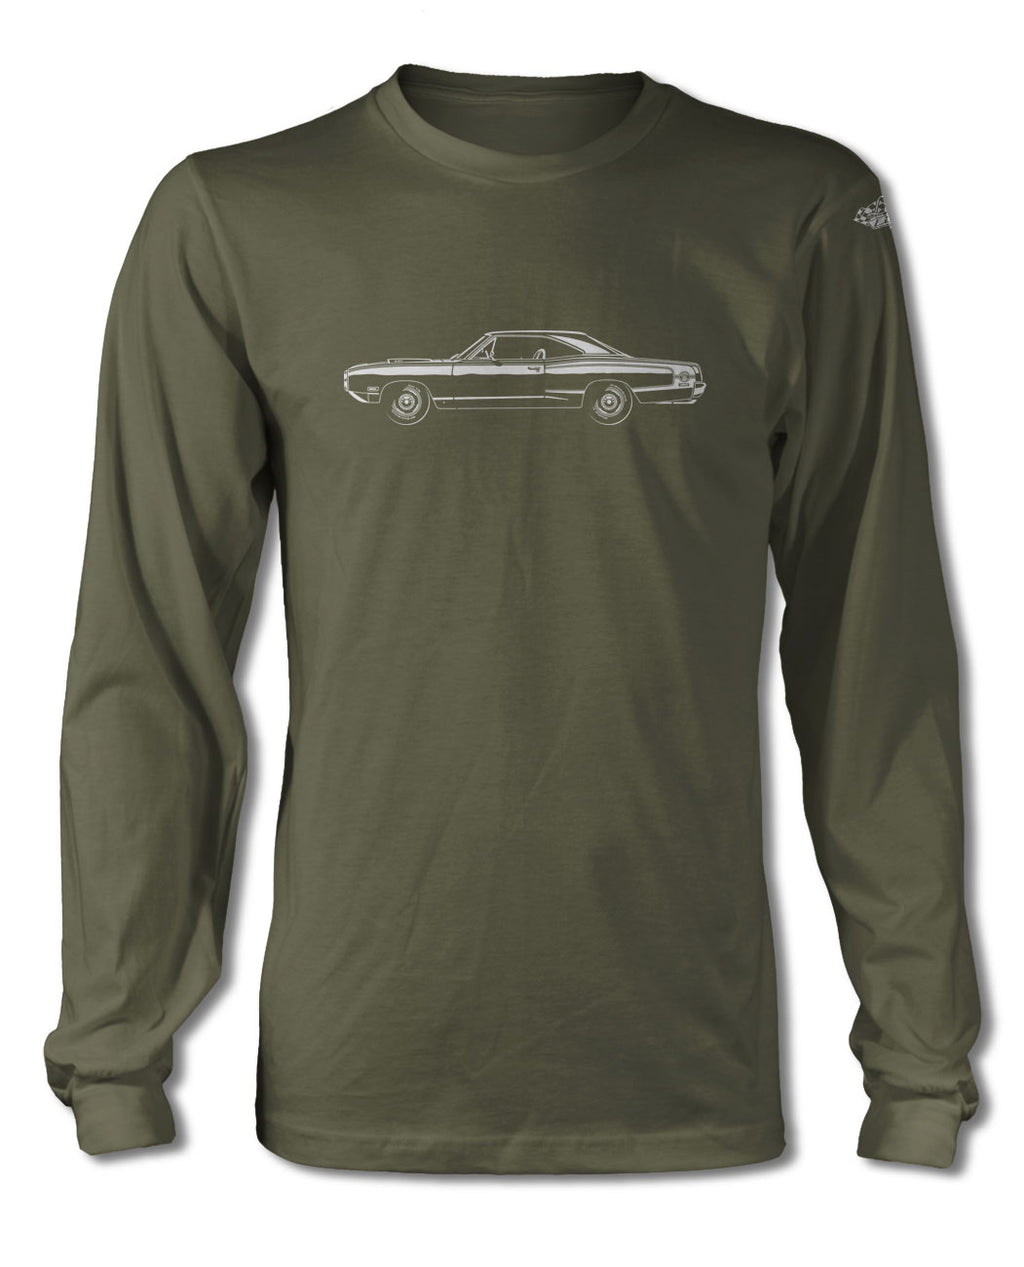 1970 Dodge Coronet Super Bee Hardtop T-Shirt - Long Sleeves - Side View